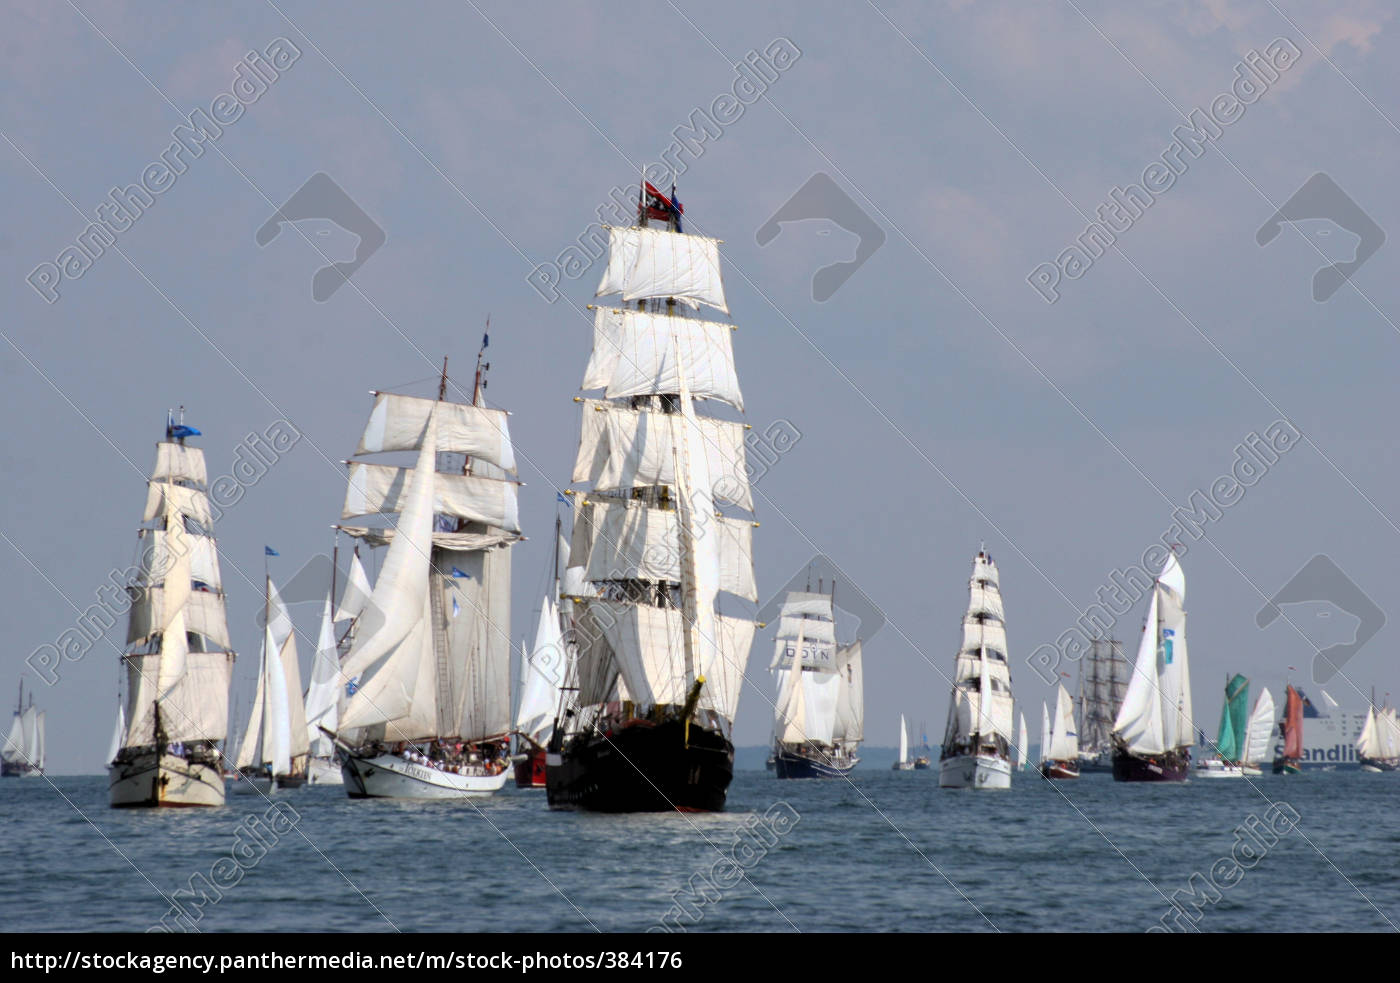 windjammer, regatta, off, warnemünde - 384176